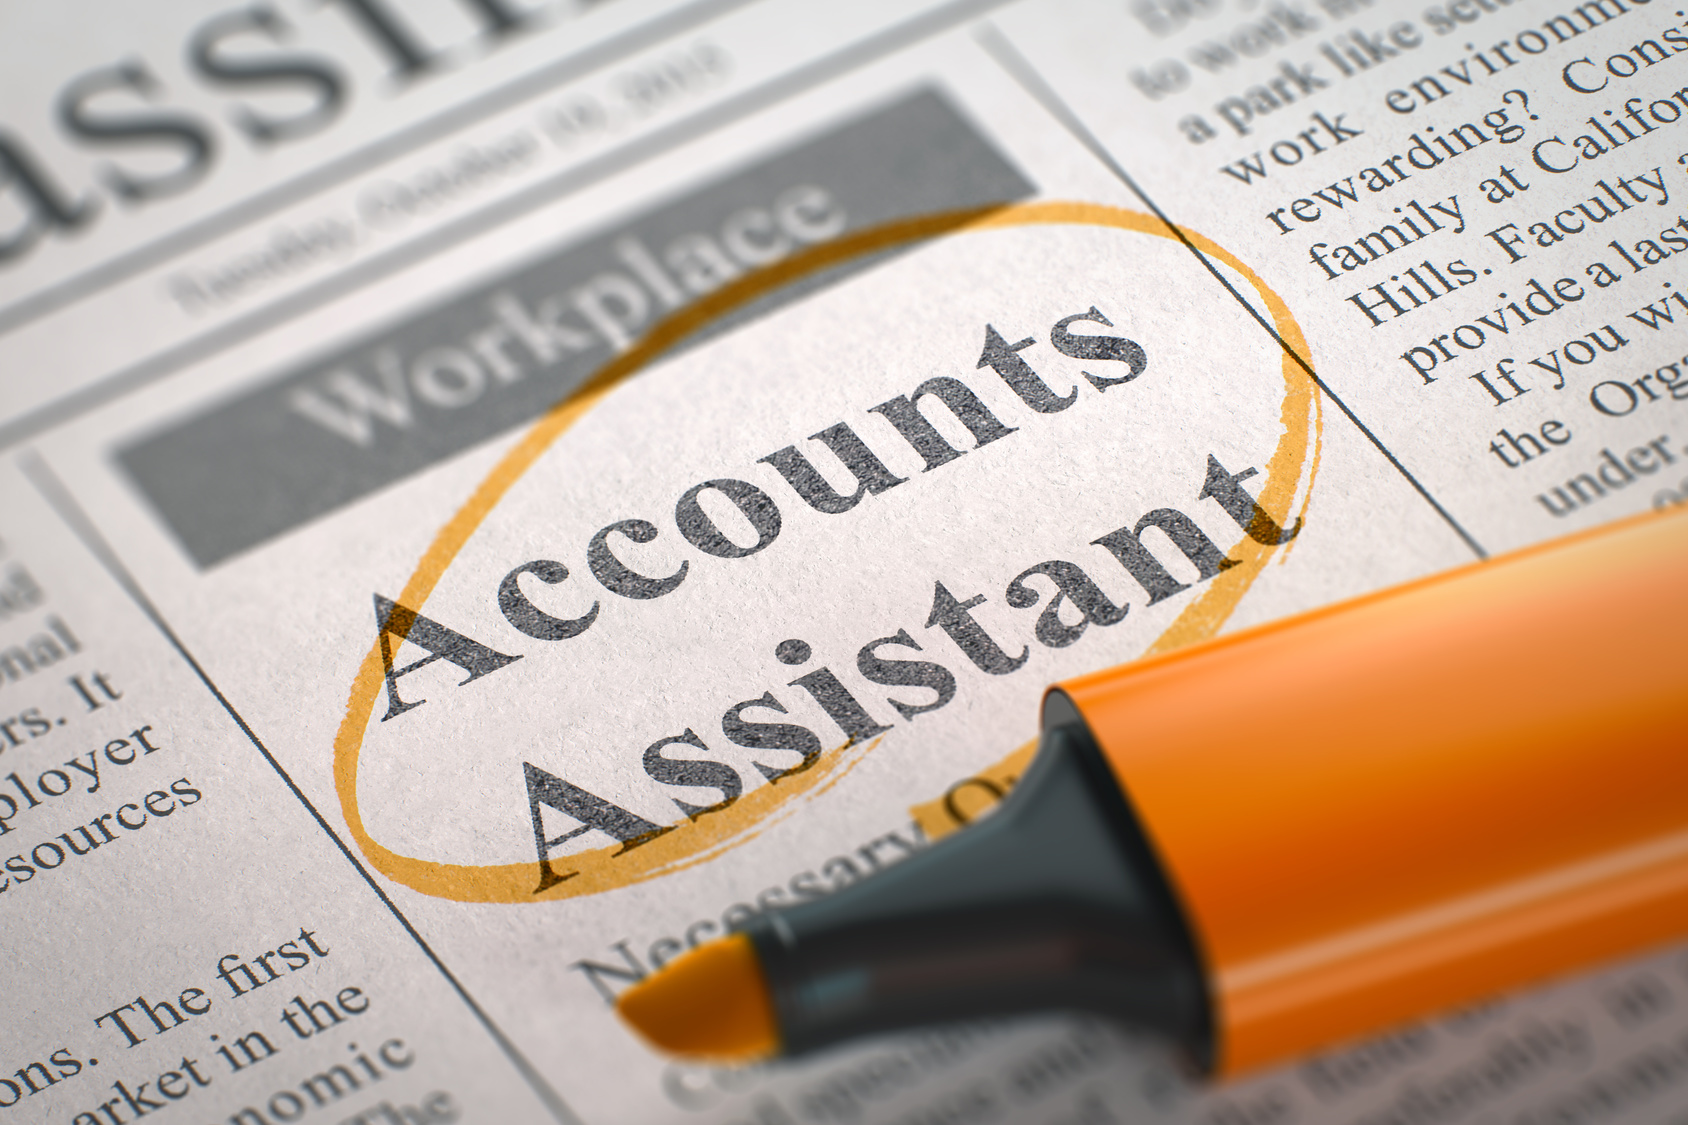 If Youu0027re Looking To Apply For A Range Of Accountancy Jobs, We Can Help  Get